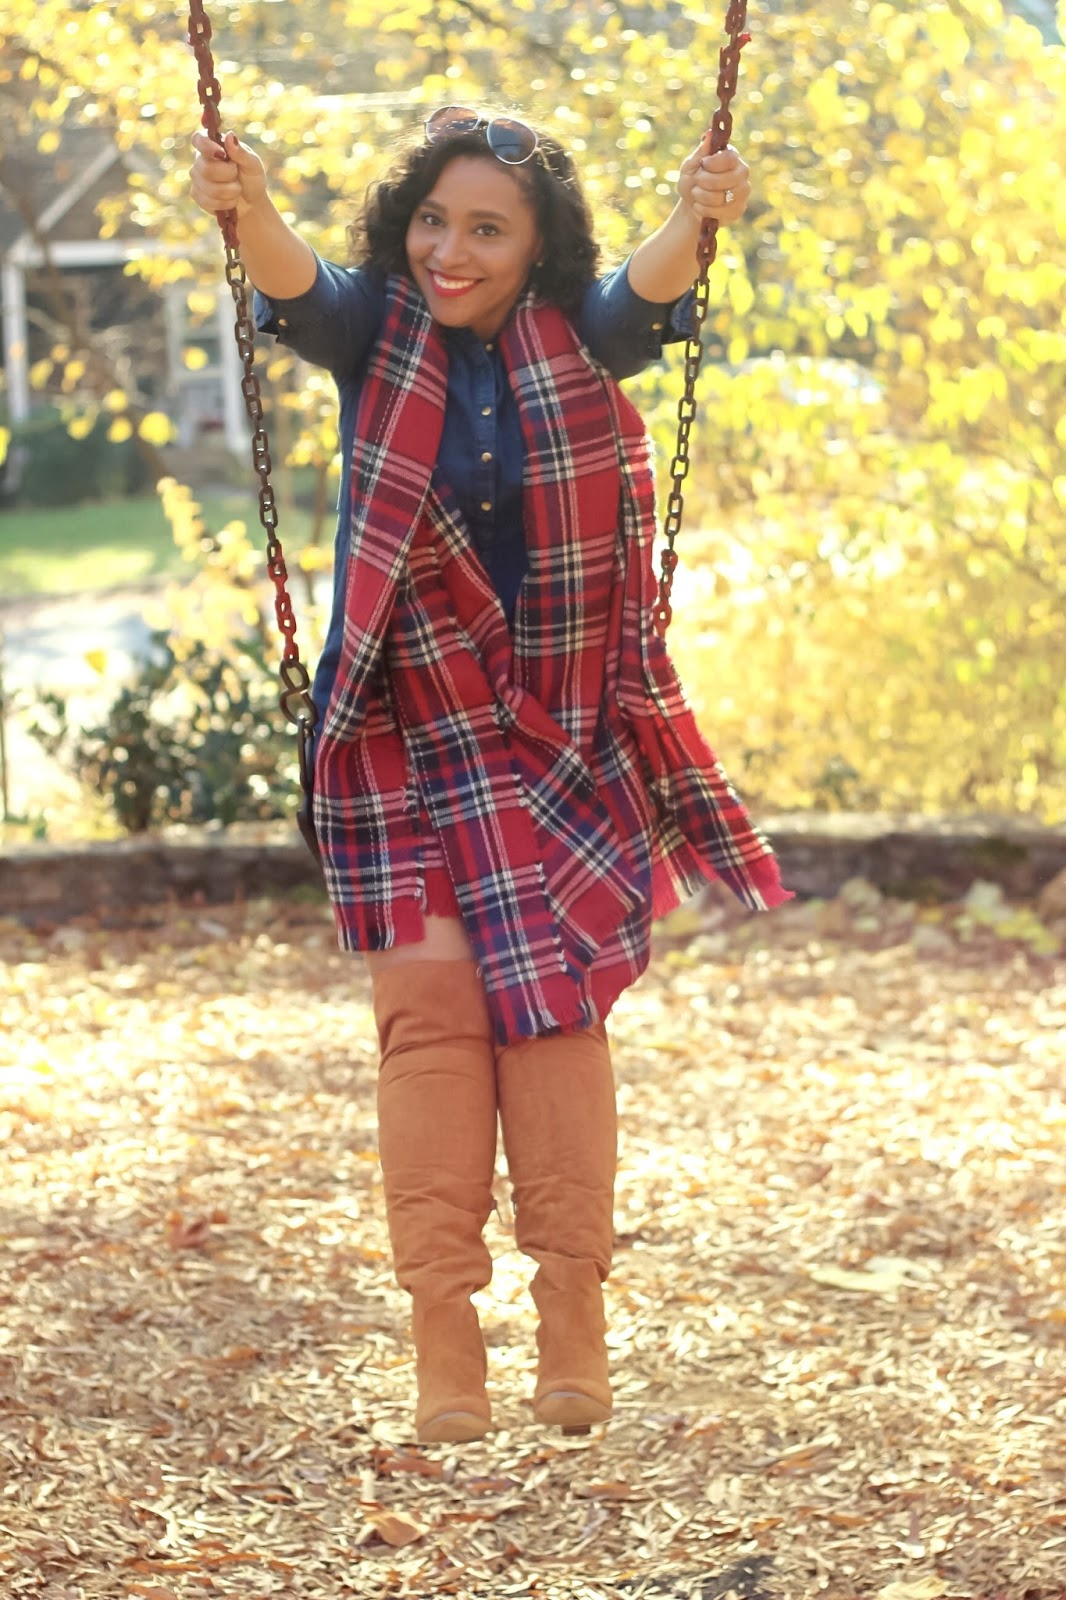 Thanksgiving, plaid, happy thanksgiving, holiday wear